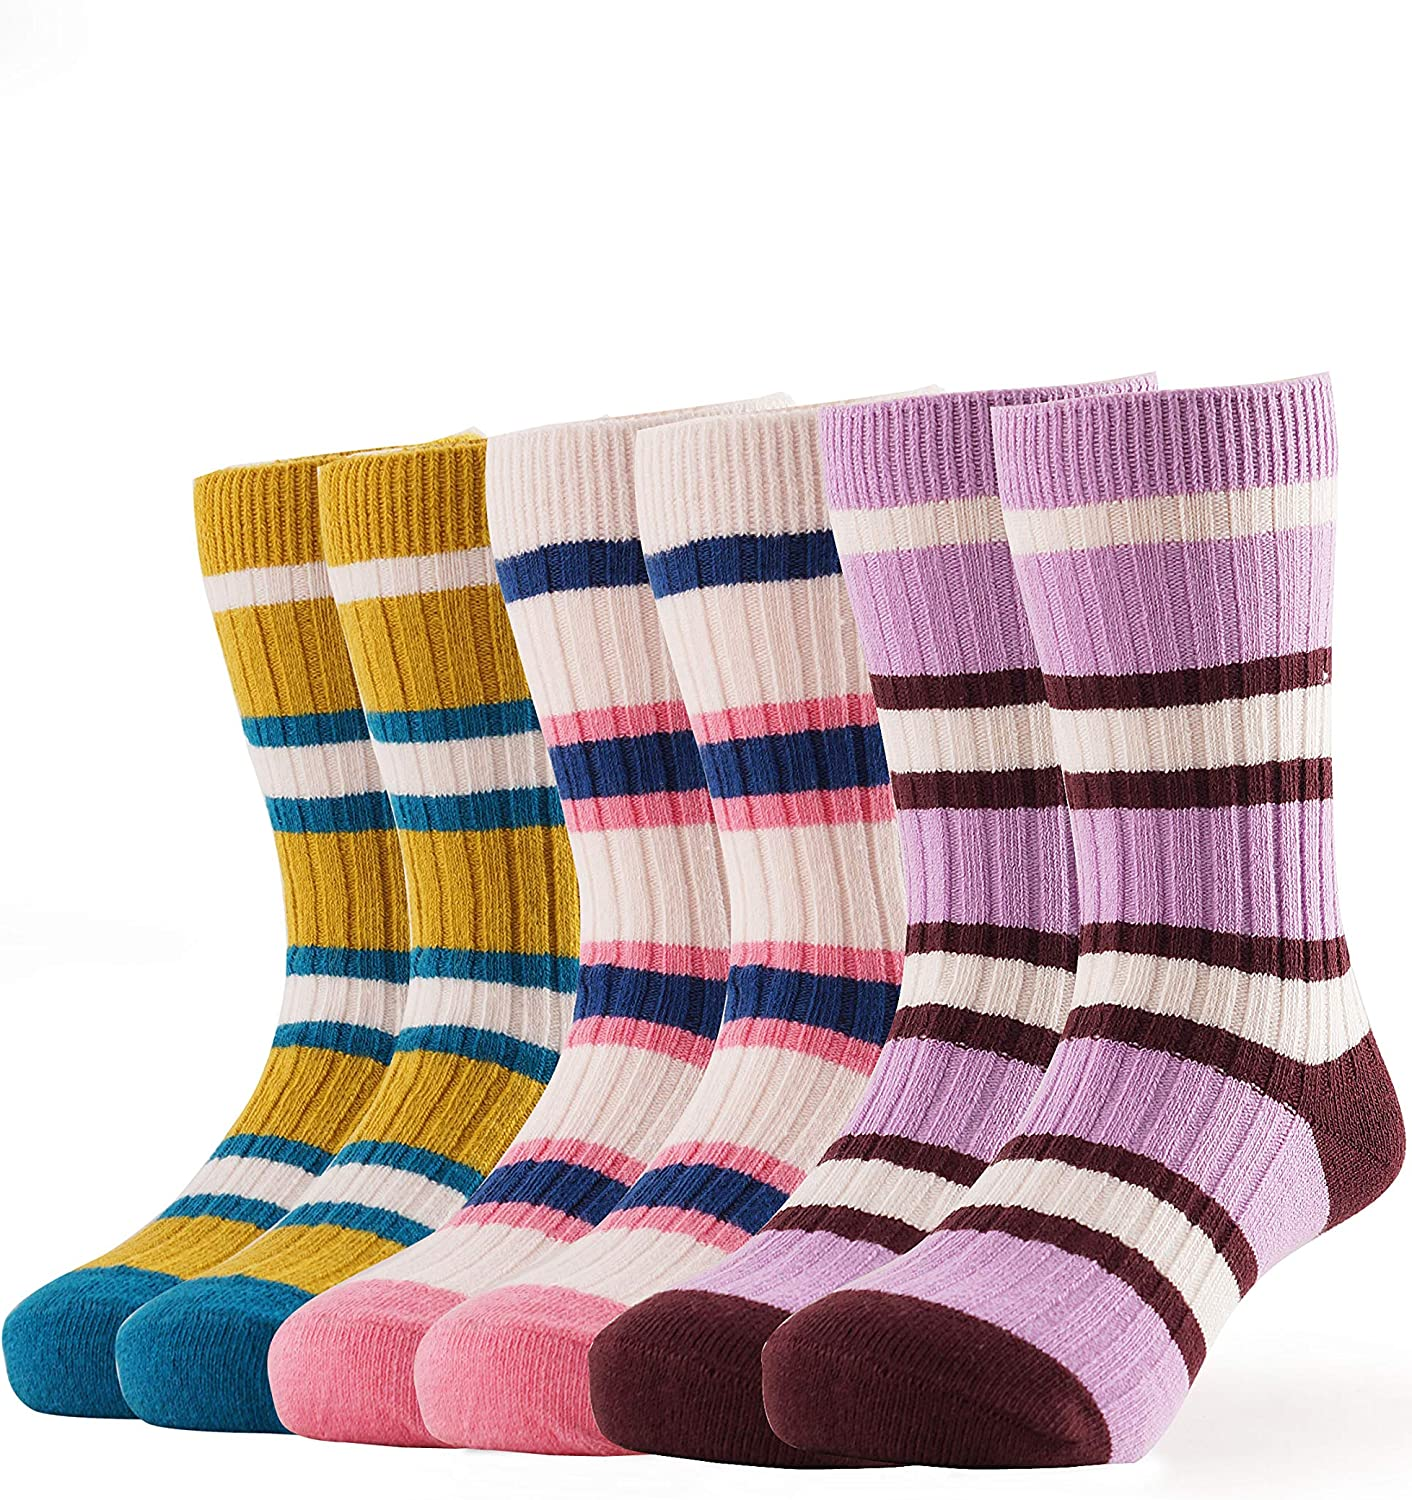 BabaMate Toddler Baby Little Kids Thick Warm Cotton Knit Winter Socks for Cold Weather 3 Pack Gifts